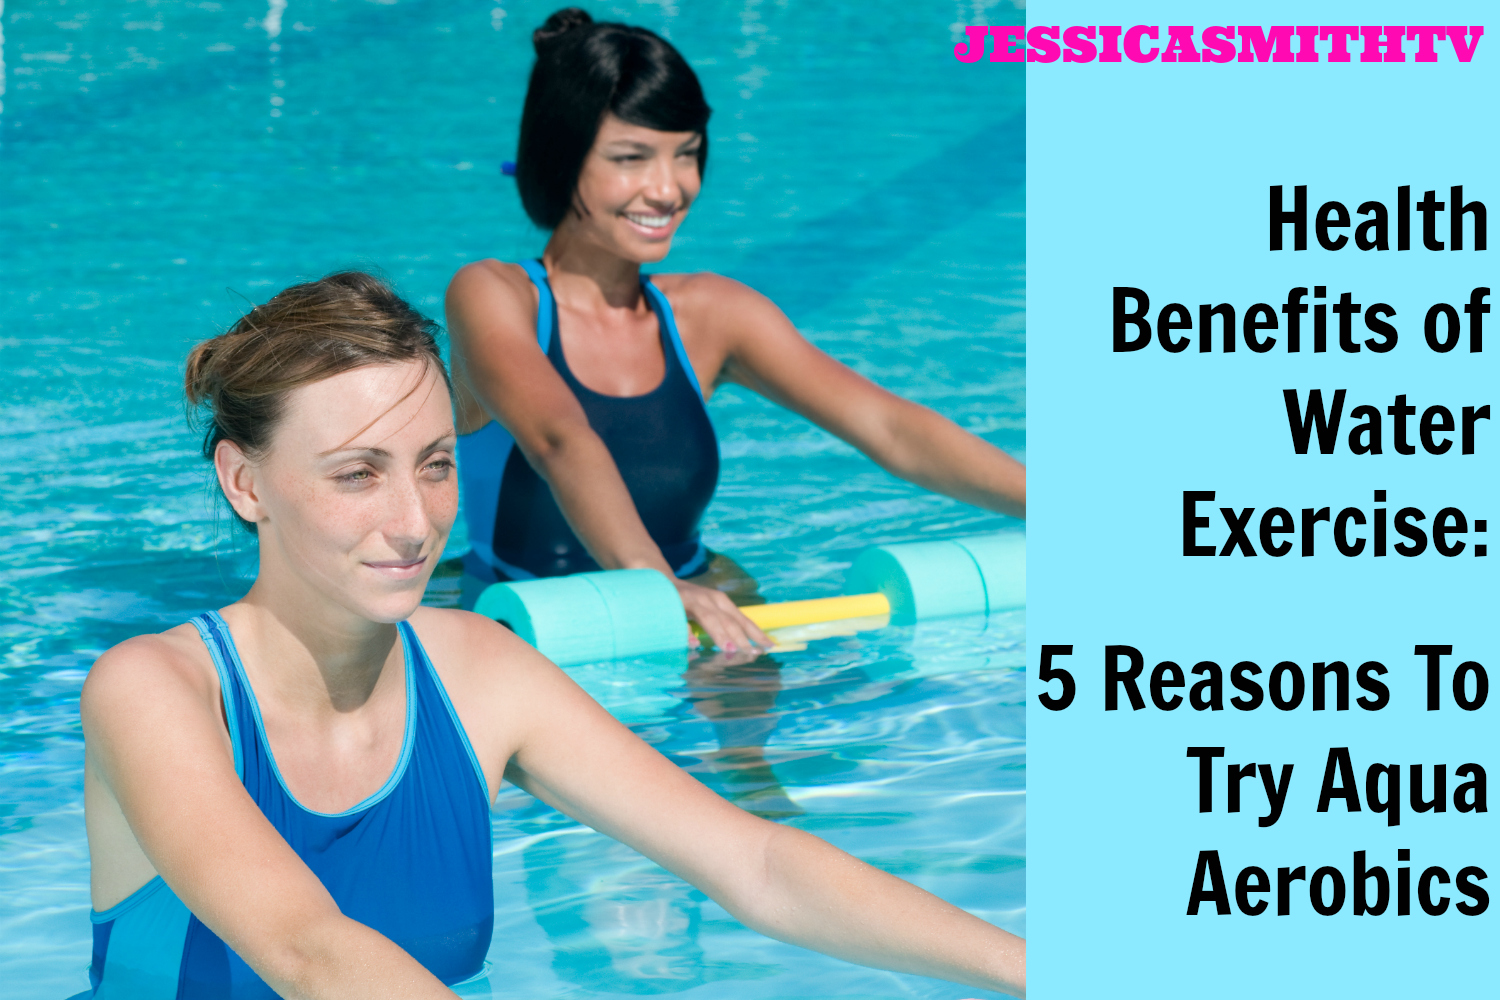 aqua exercise  water exercise  aqua aerobics  fitness  exercise    Water Aerobics Videos